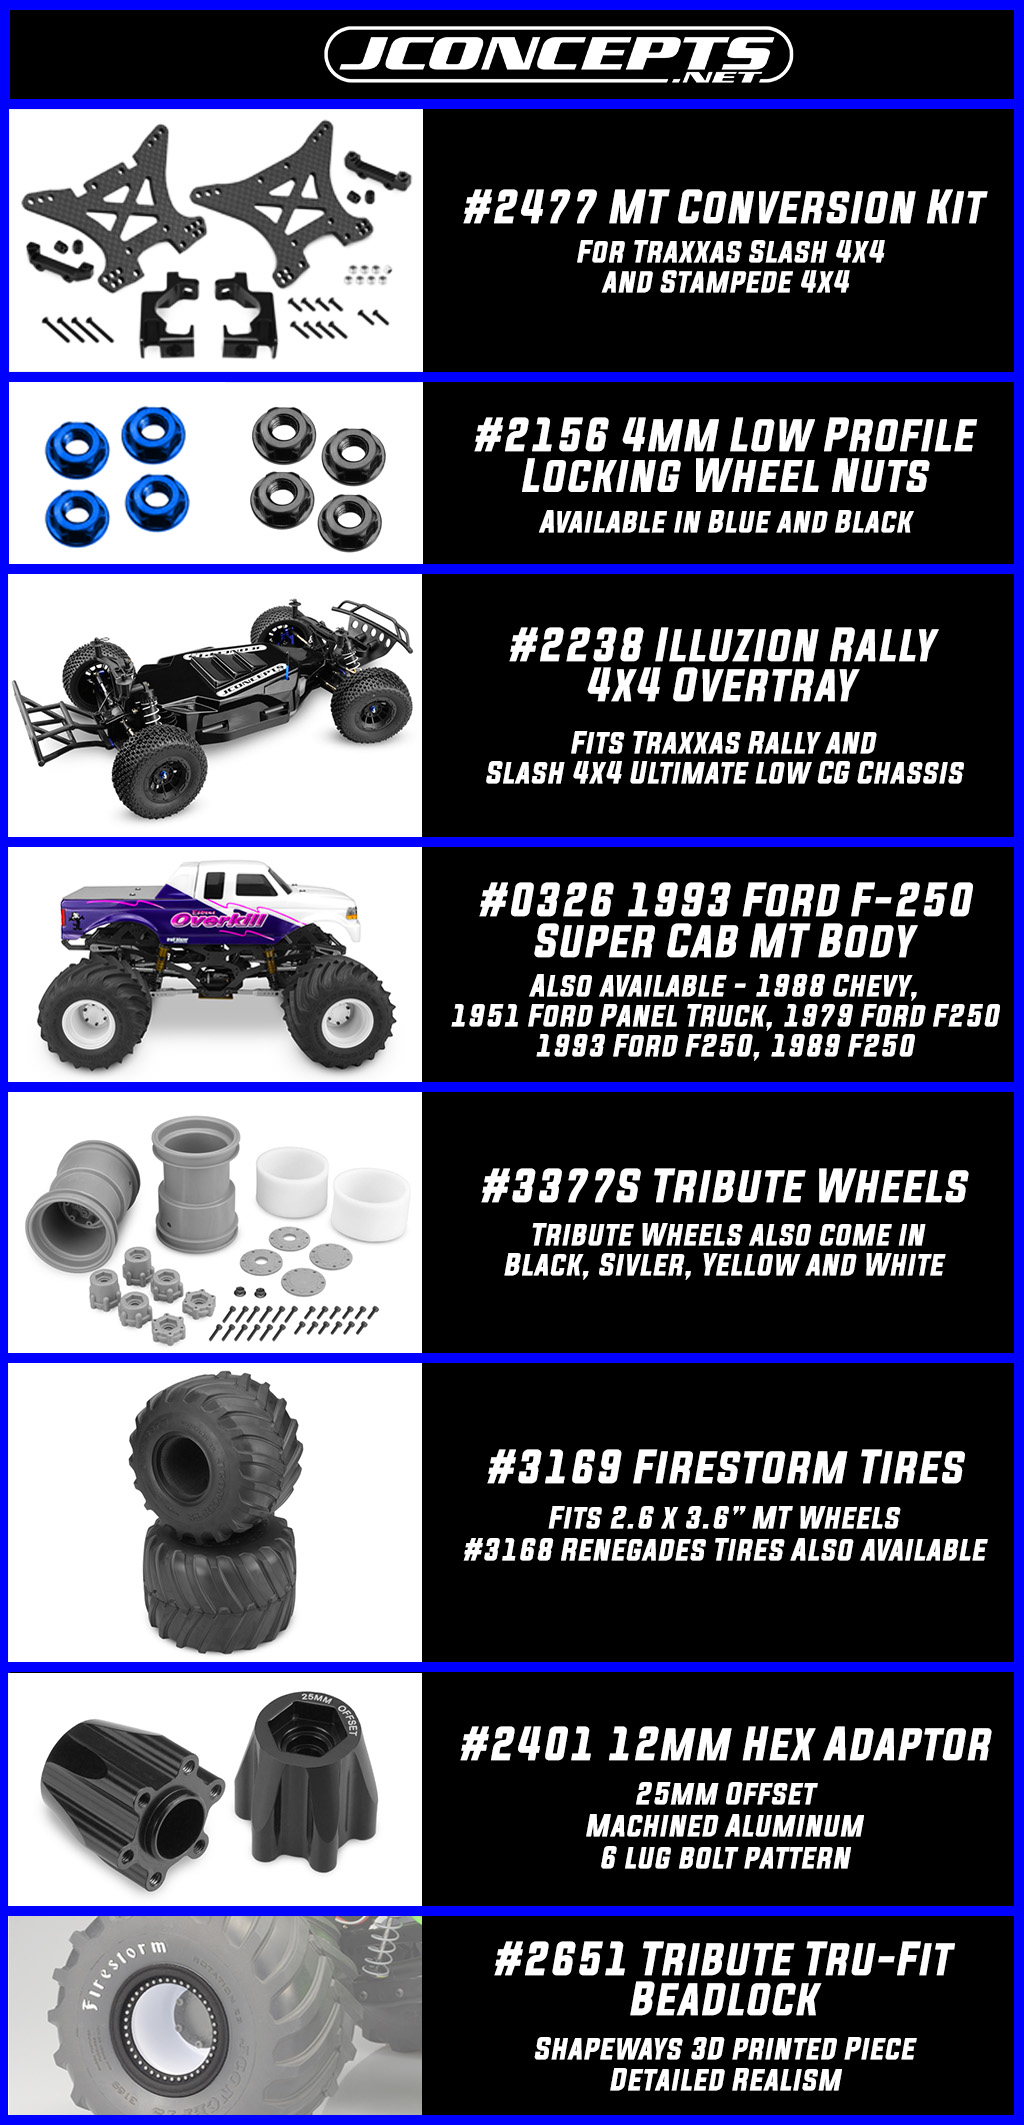 Continuing the Stage 4 dream build here are a few options parts from Traxxas for easy reference The inexpensive rally body mounts is a must while the GTR